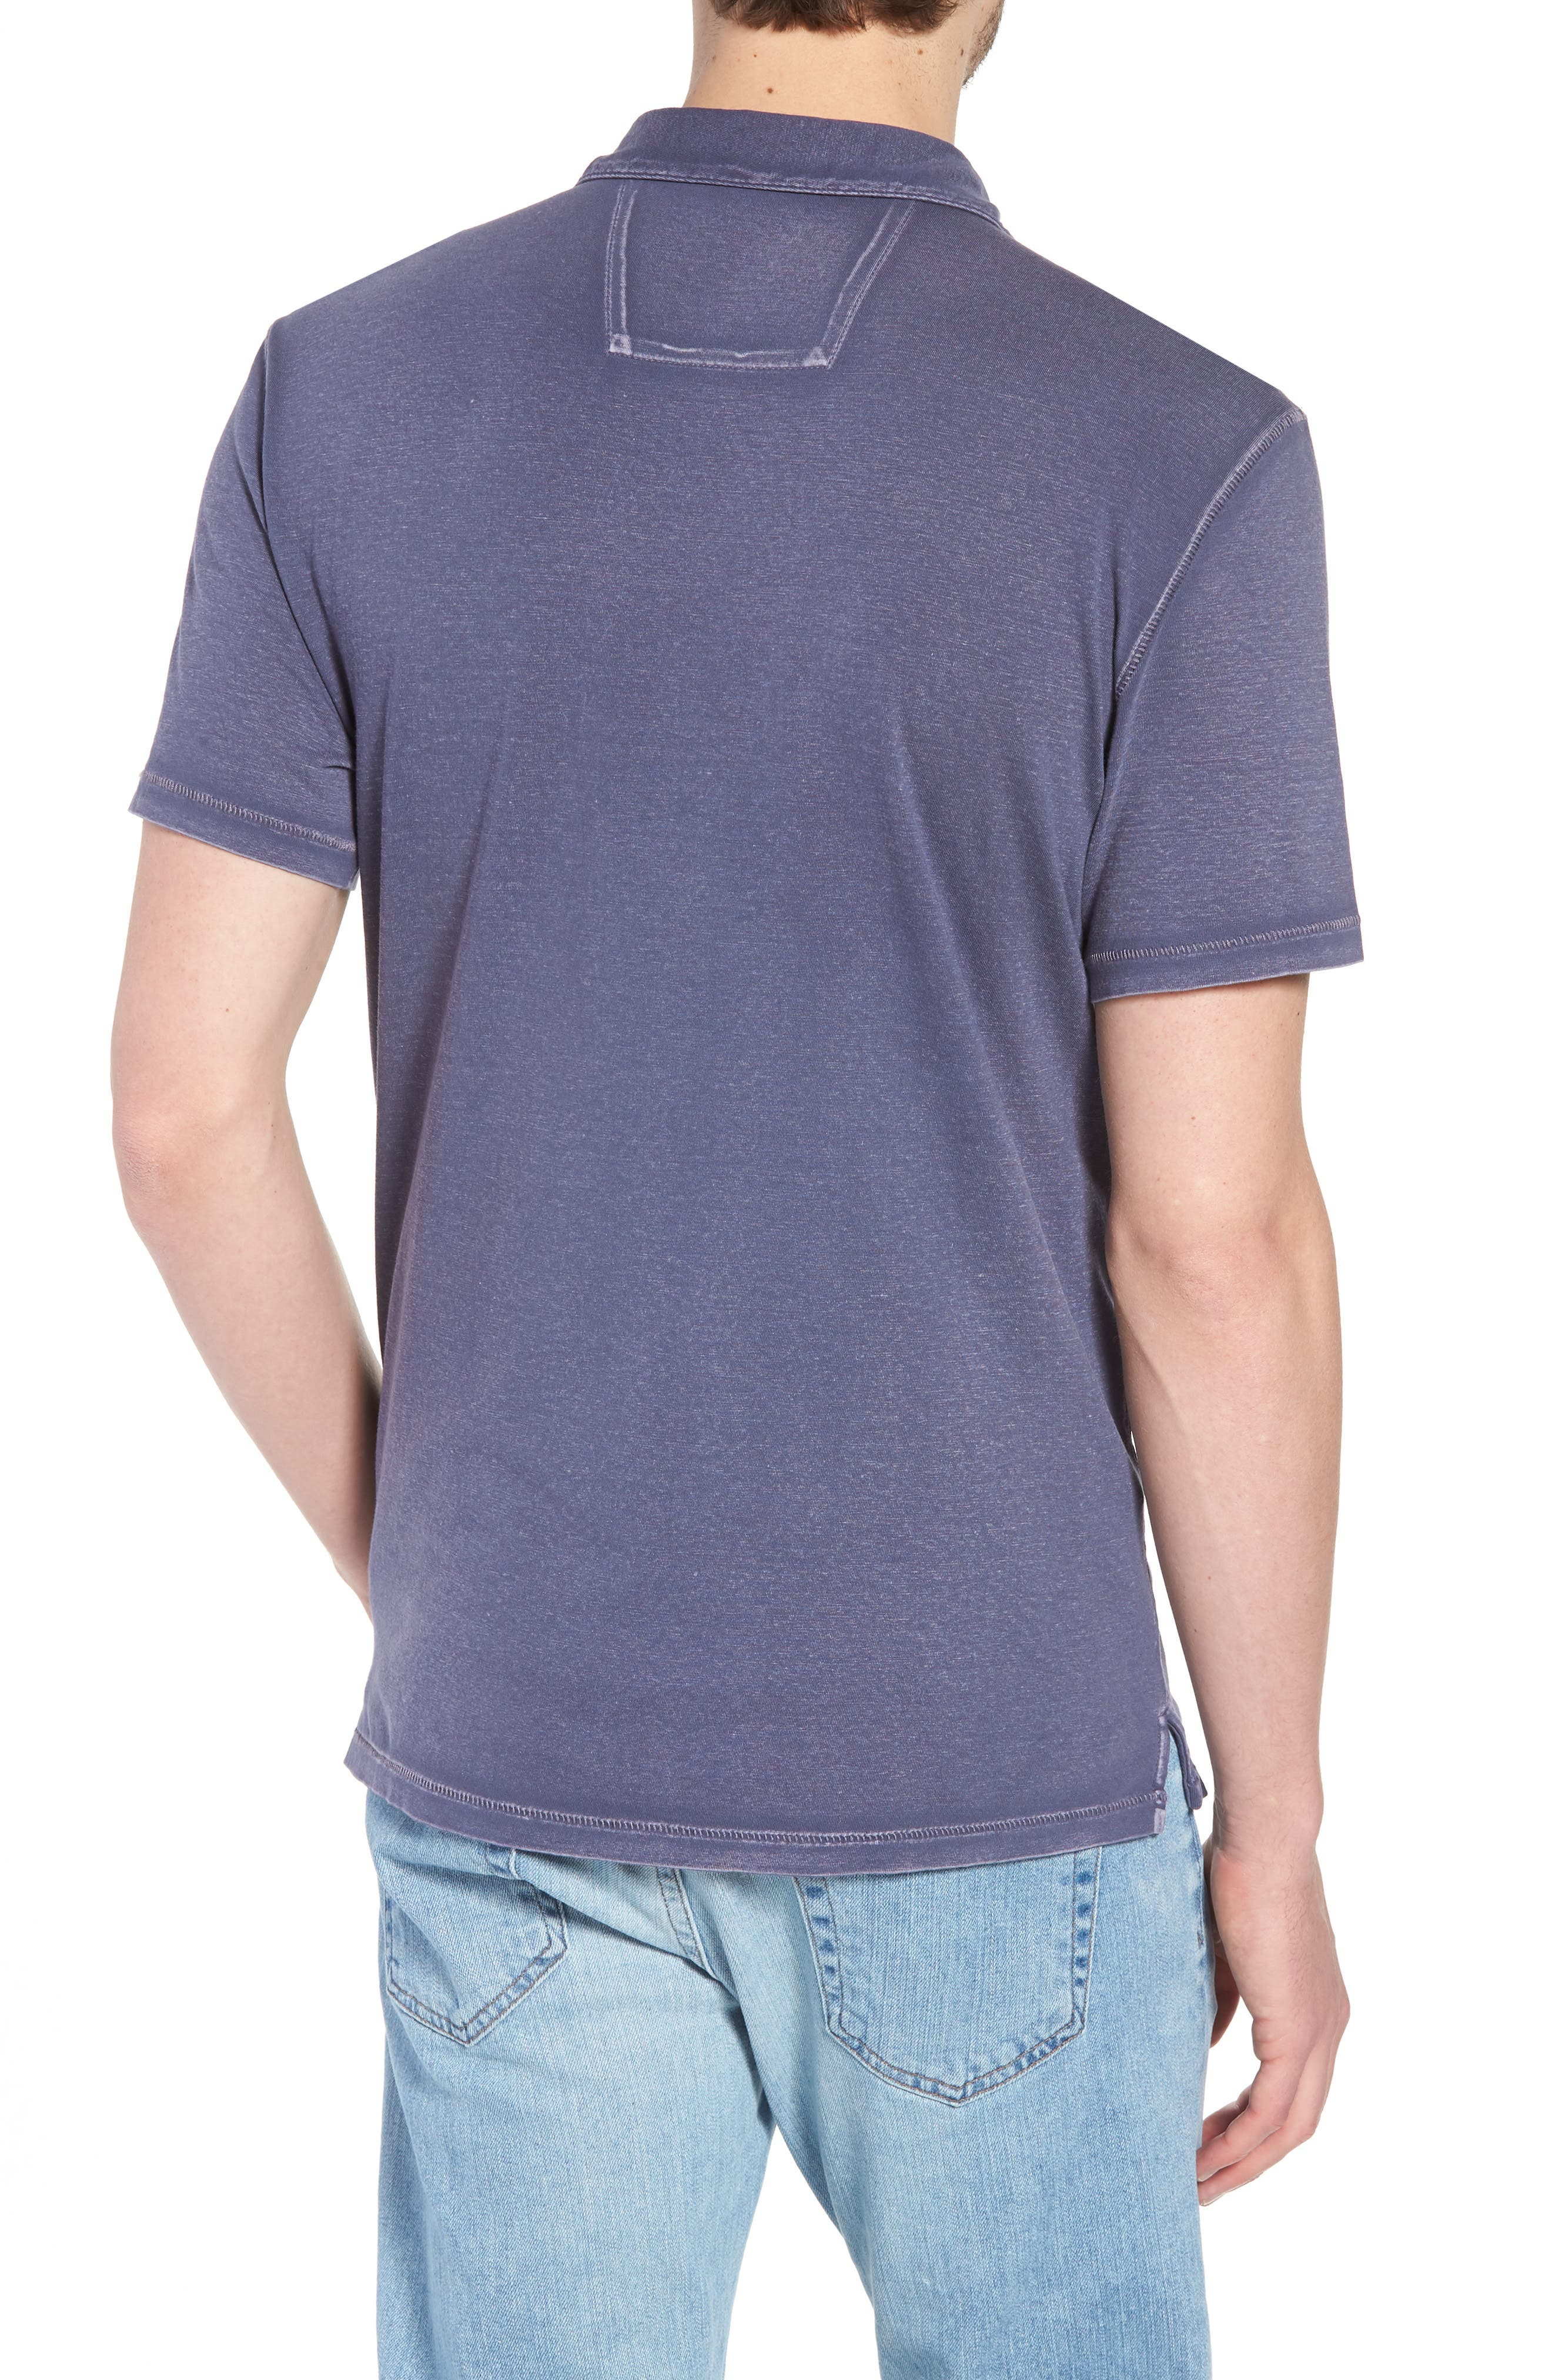 Regular Fit Polo,                             Alternate thumbnail 2, color,                             Dry Lavender